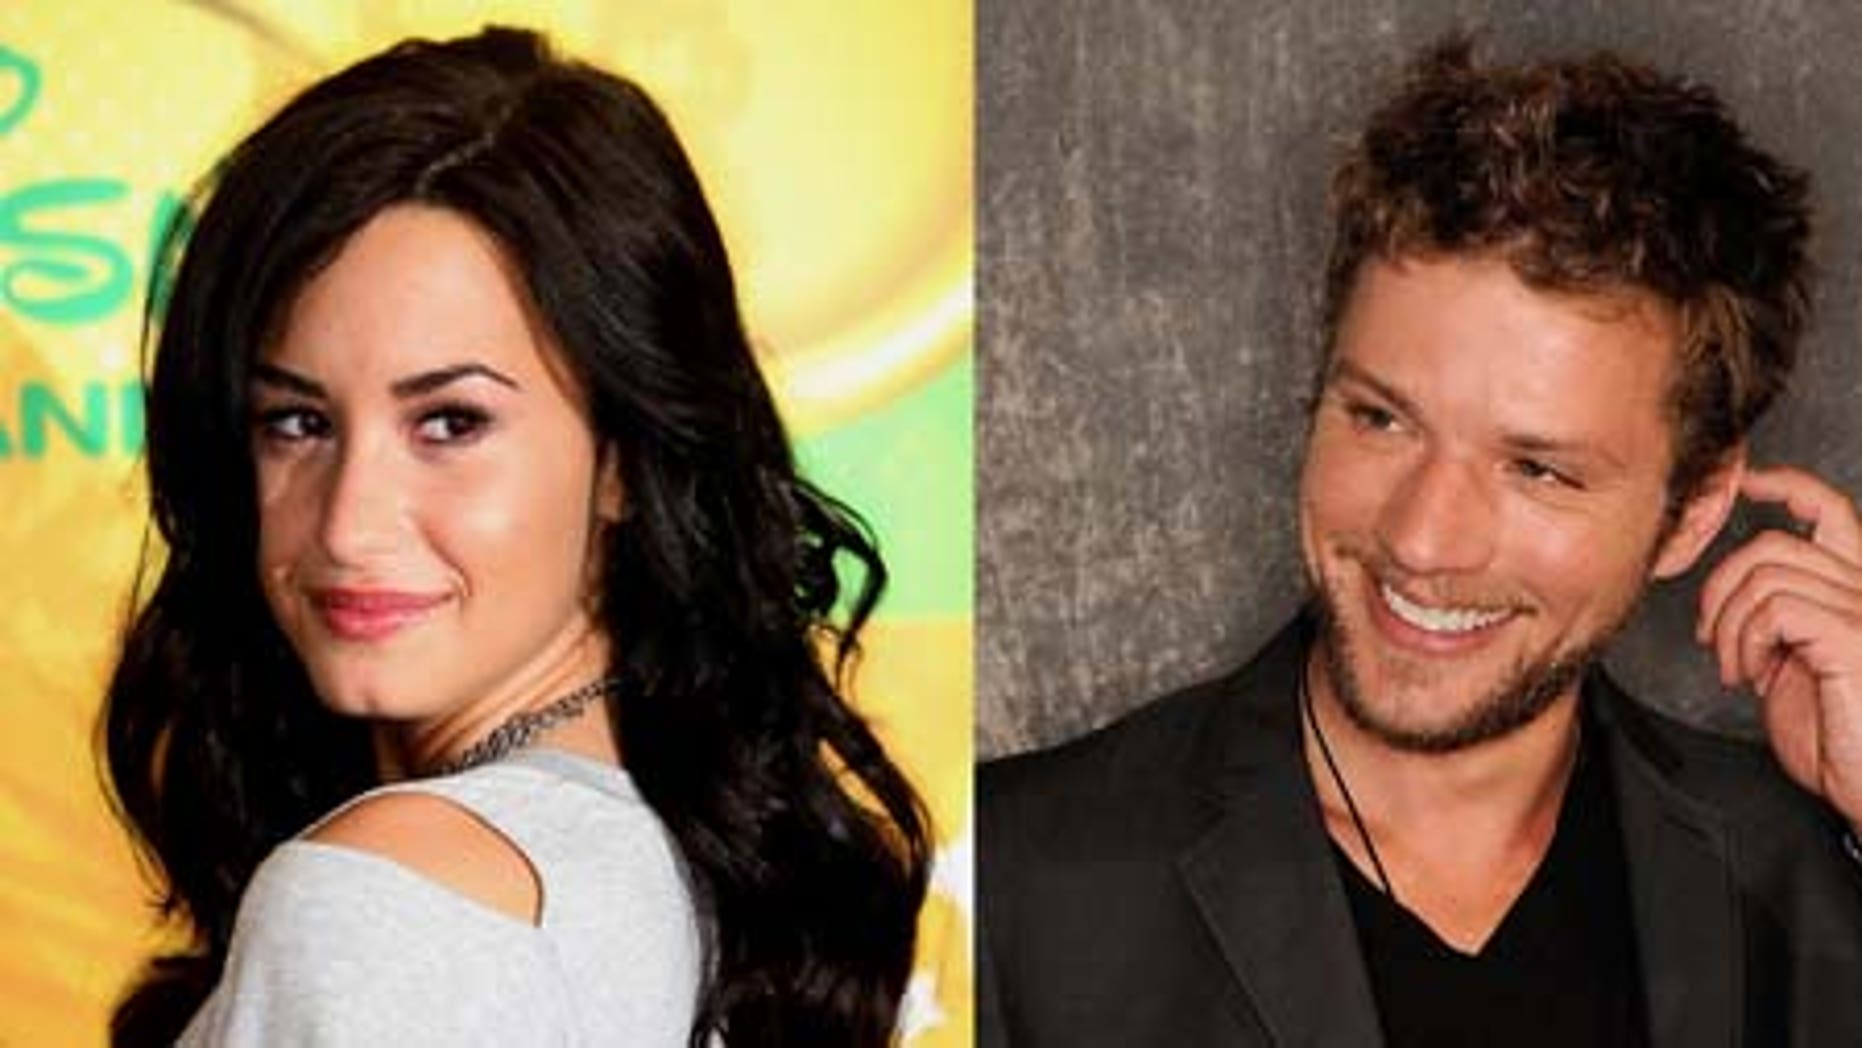 July 19, 2011: singer/actress Demi Lovato is rumored to be dating Hollywood A-Lister actor Ryan Phillippe.